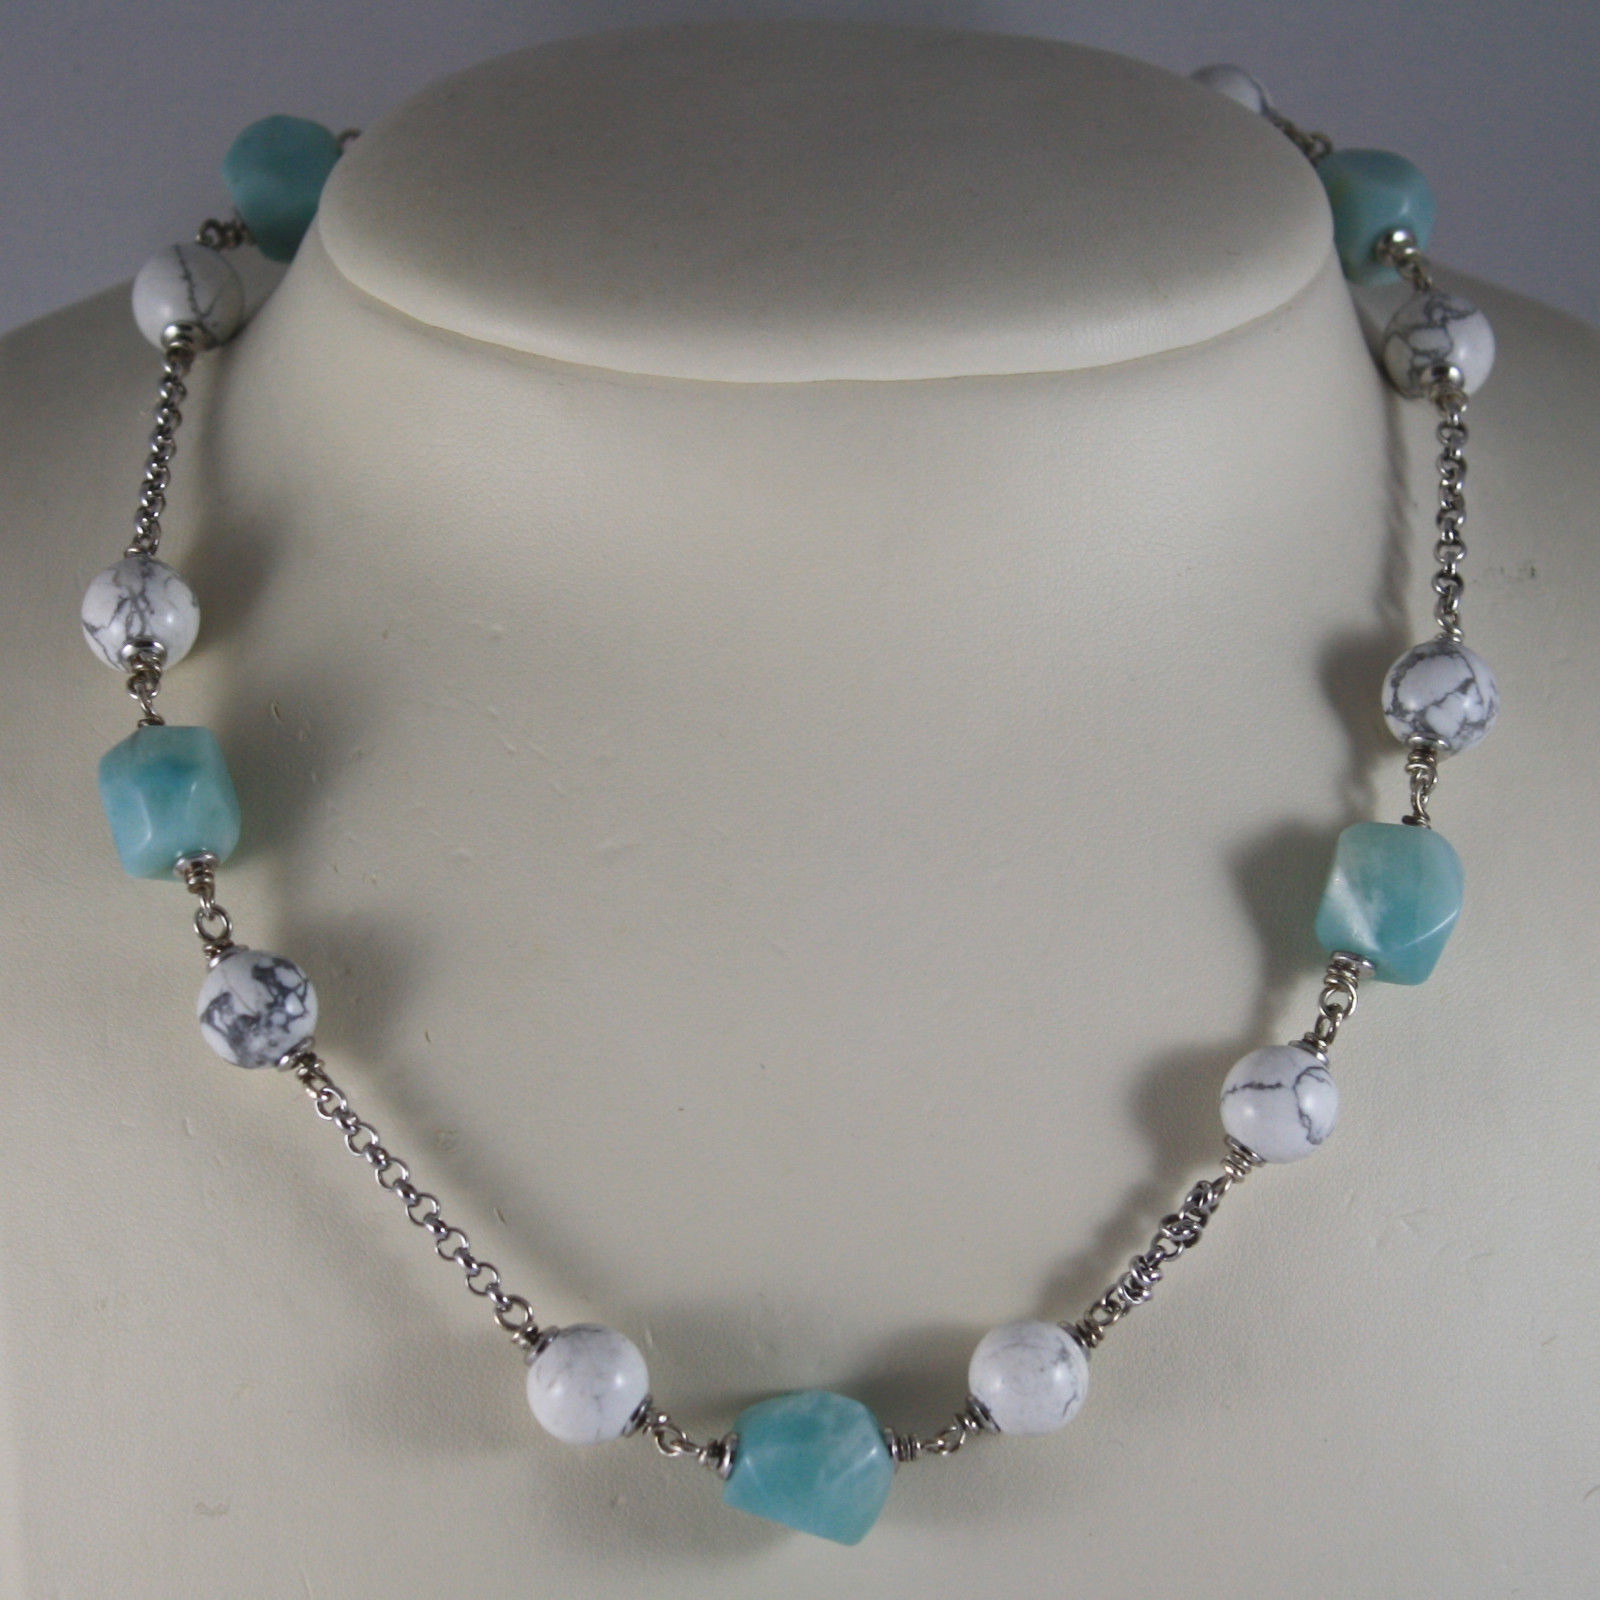 .925 RHODIUM SILVER NECKLACE WITH WHITE HOWLITE AND BLUE QUARTZ